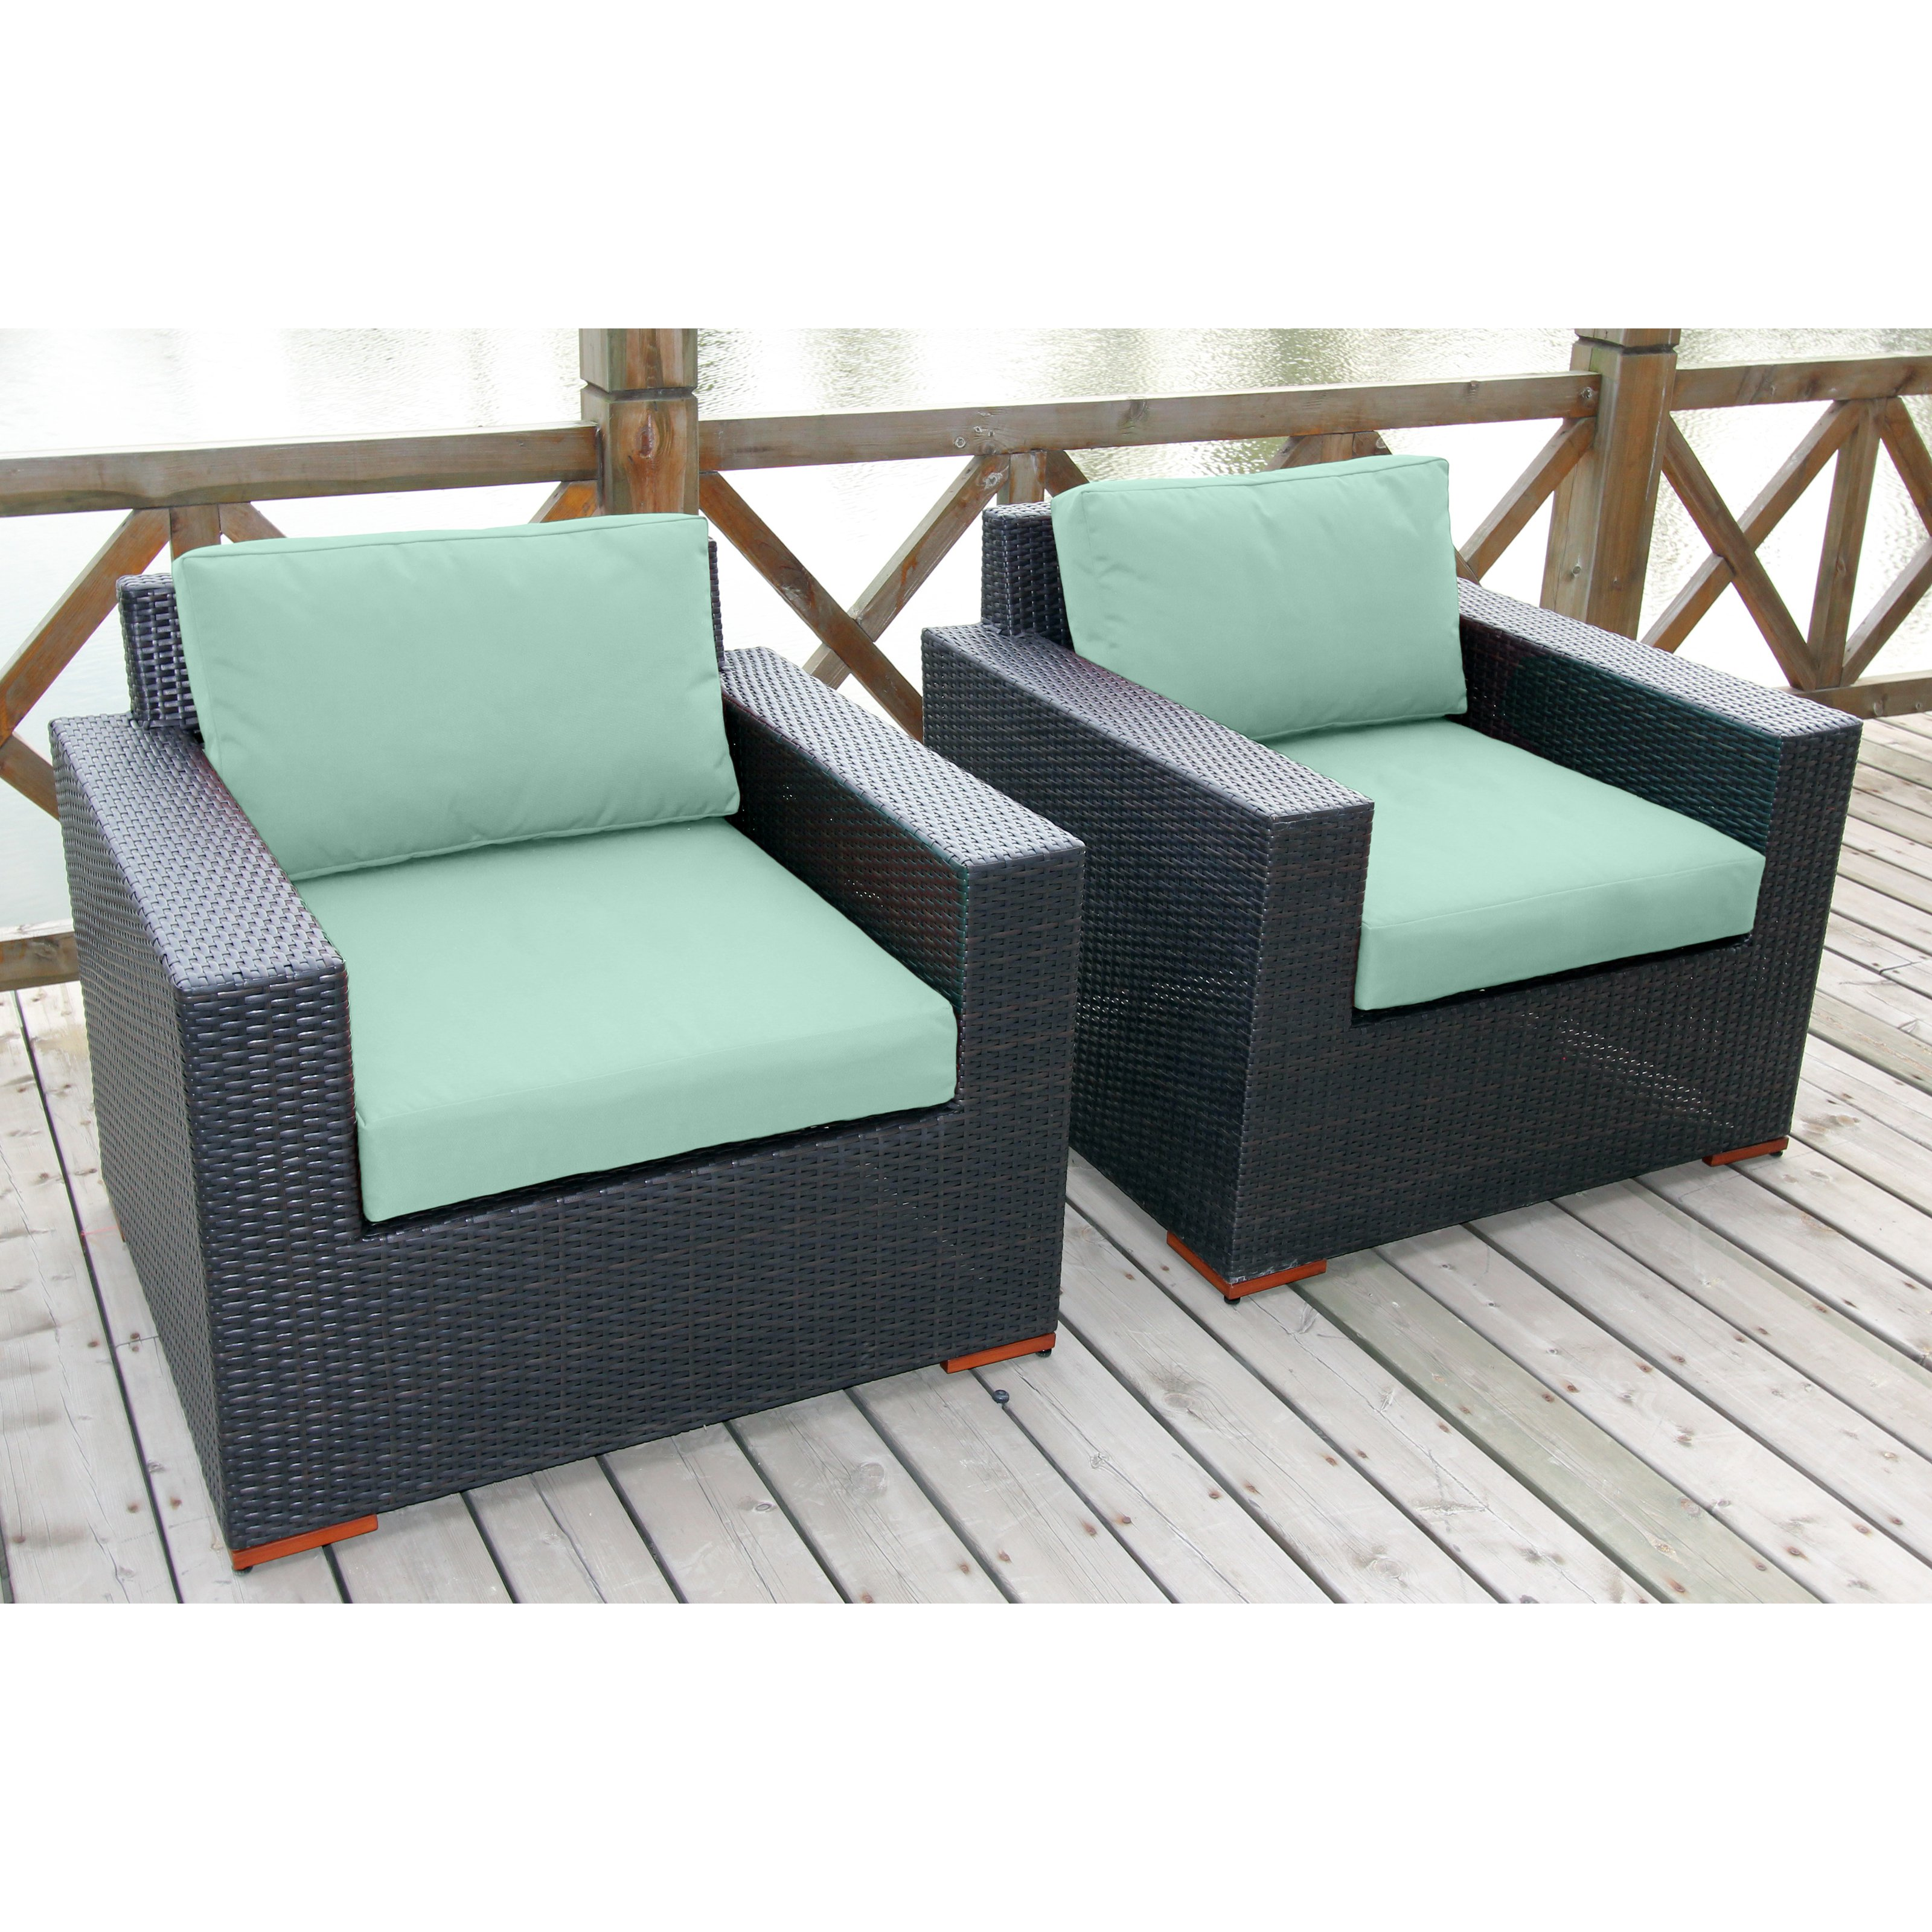 Talia Outdoor Deep Seating Club Chair with Ottoman Set of 2